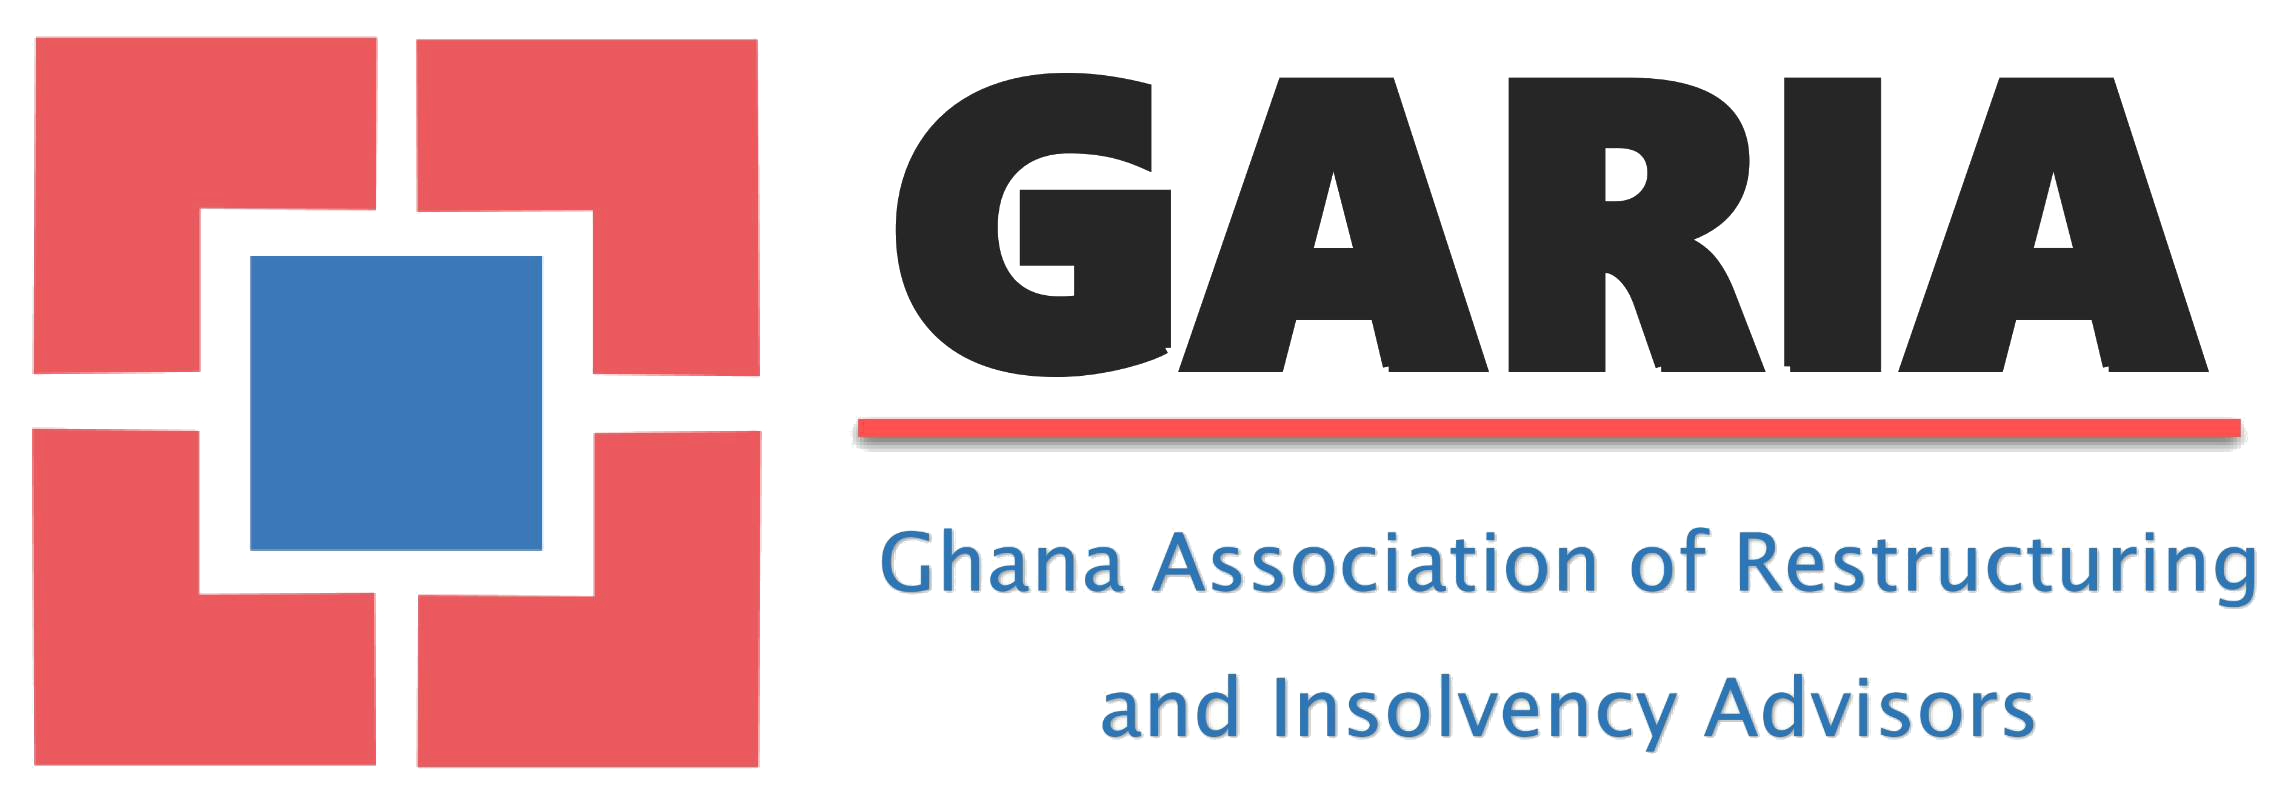 The Ghana Association of Restructuring and Insolvency Advisors (GARIA) - Ghana